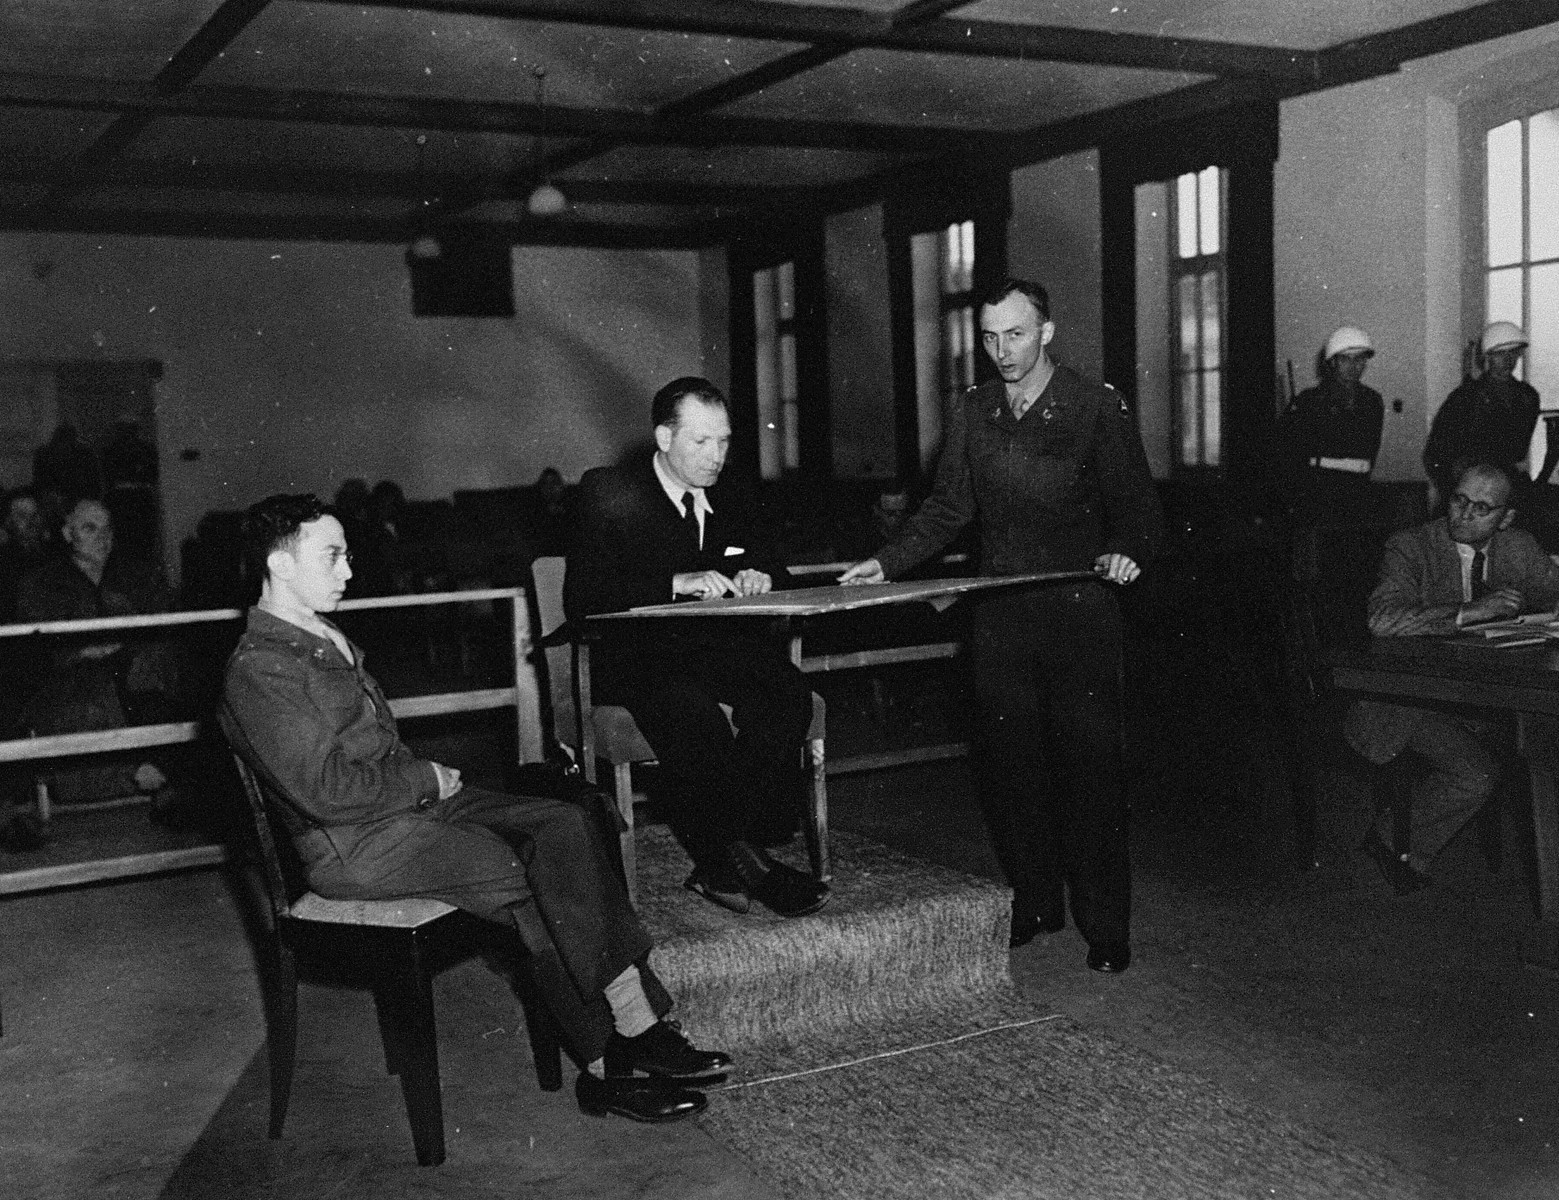 A witness testifies at the trial of 61 former camp personnel and prisoners from Mauthausen.    Pictured on the right is U.S. prosecutor William Denson.